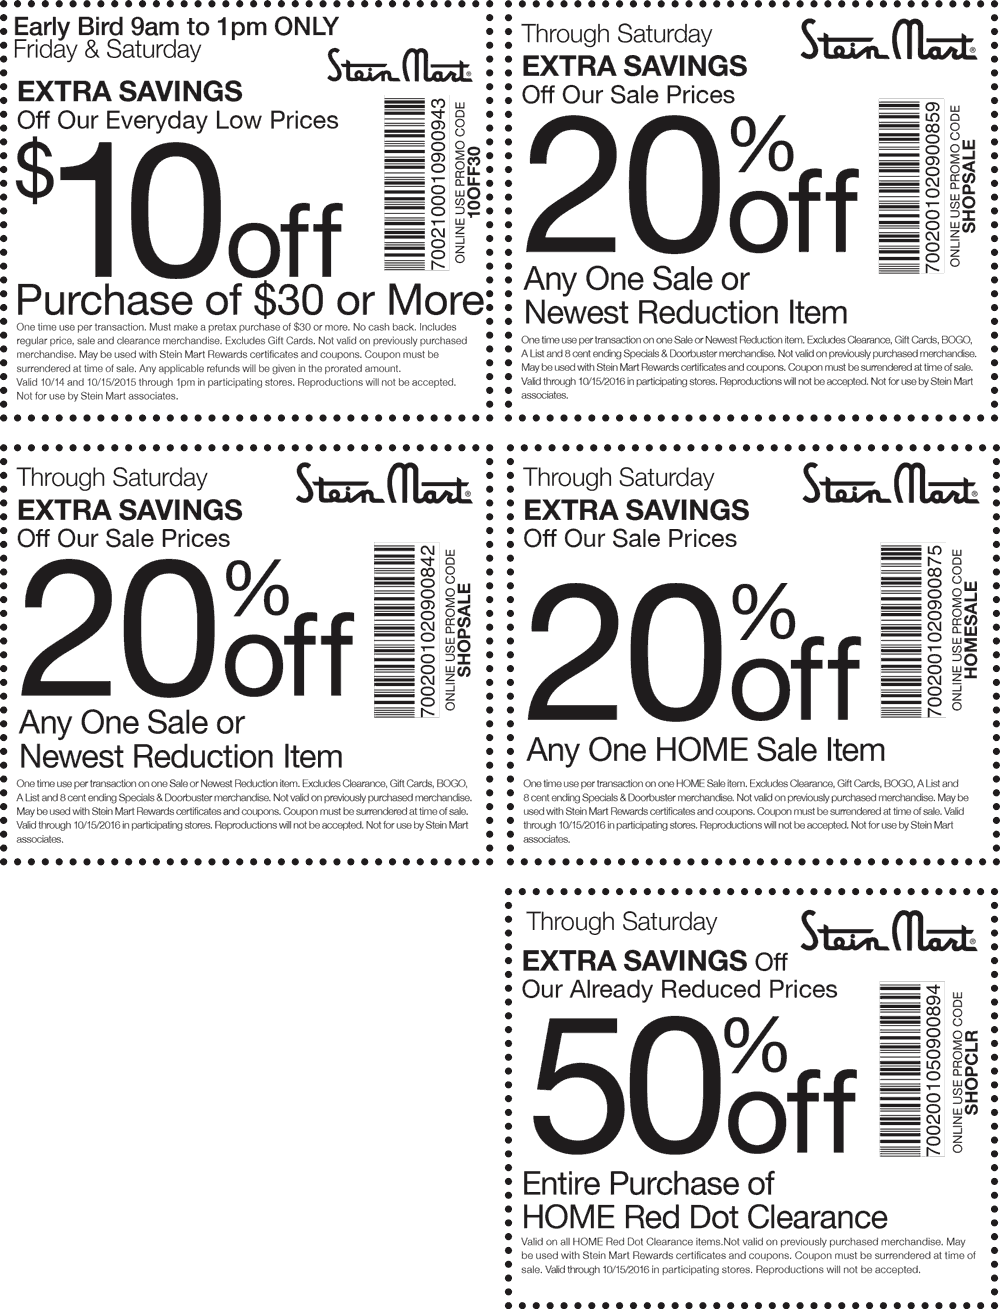 picture regarding Stein Mart Printable Coupon identify coupon - 40 40 club baseball